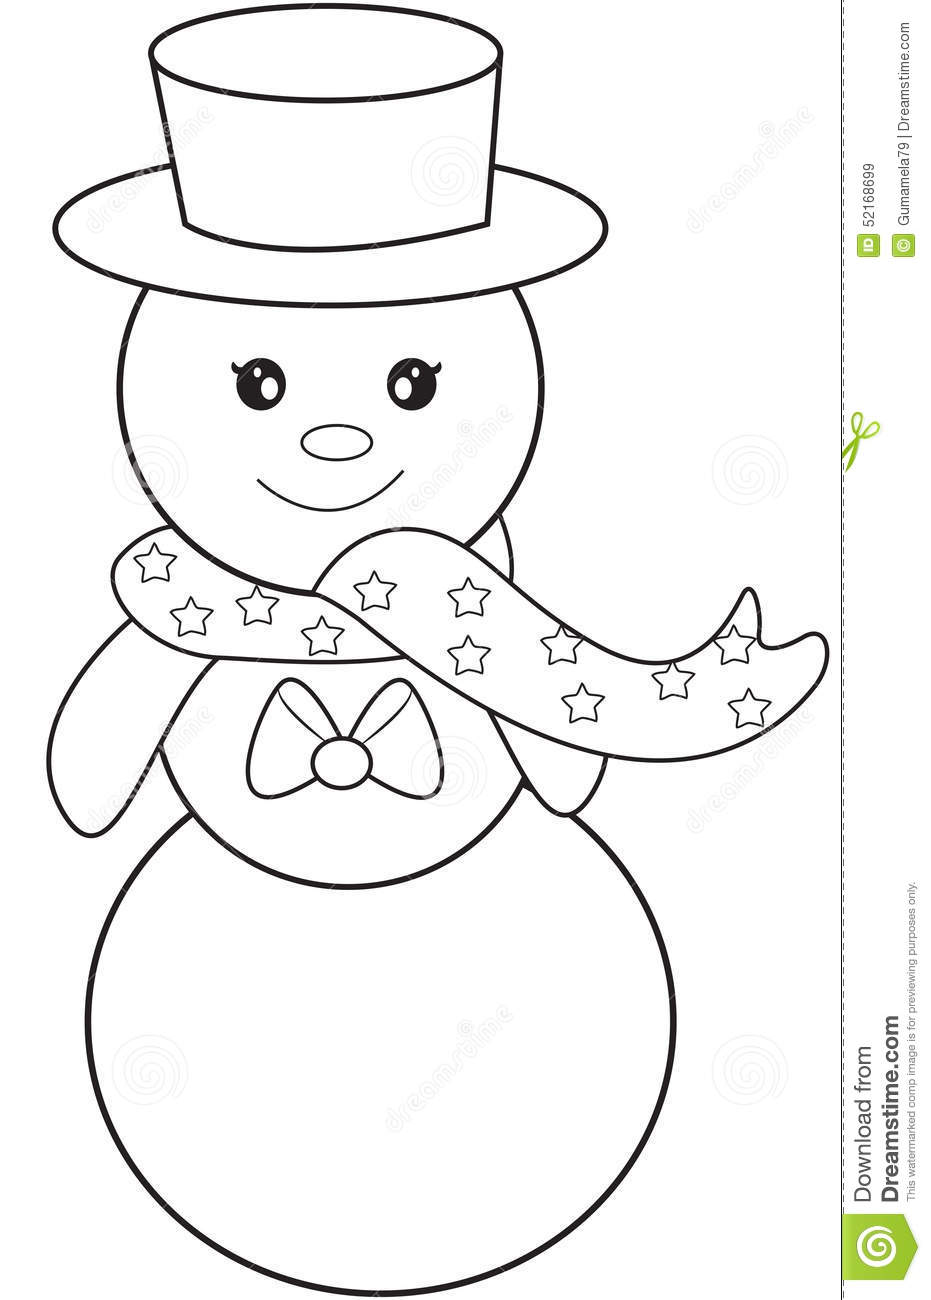 Snowman coloring page stock illustration. Illustration of clip ...